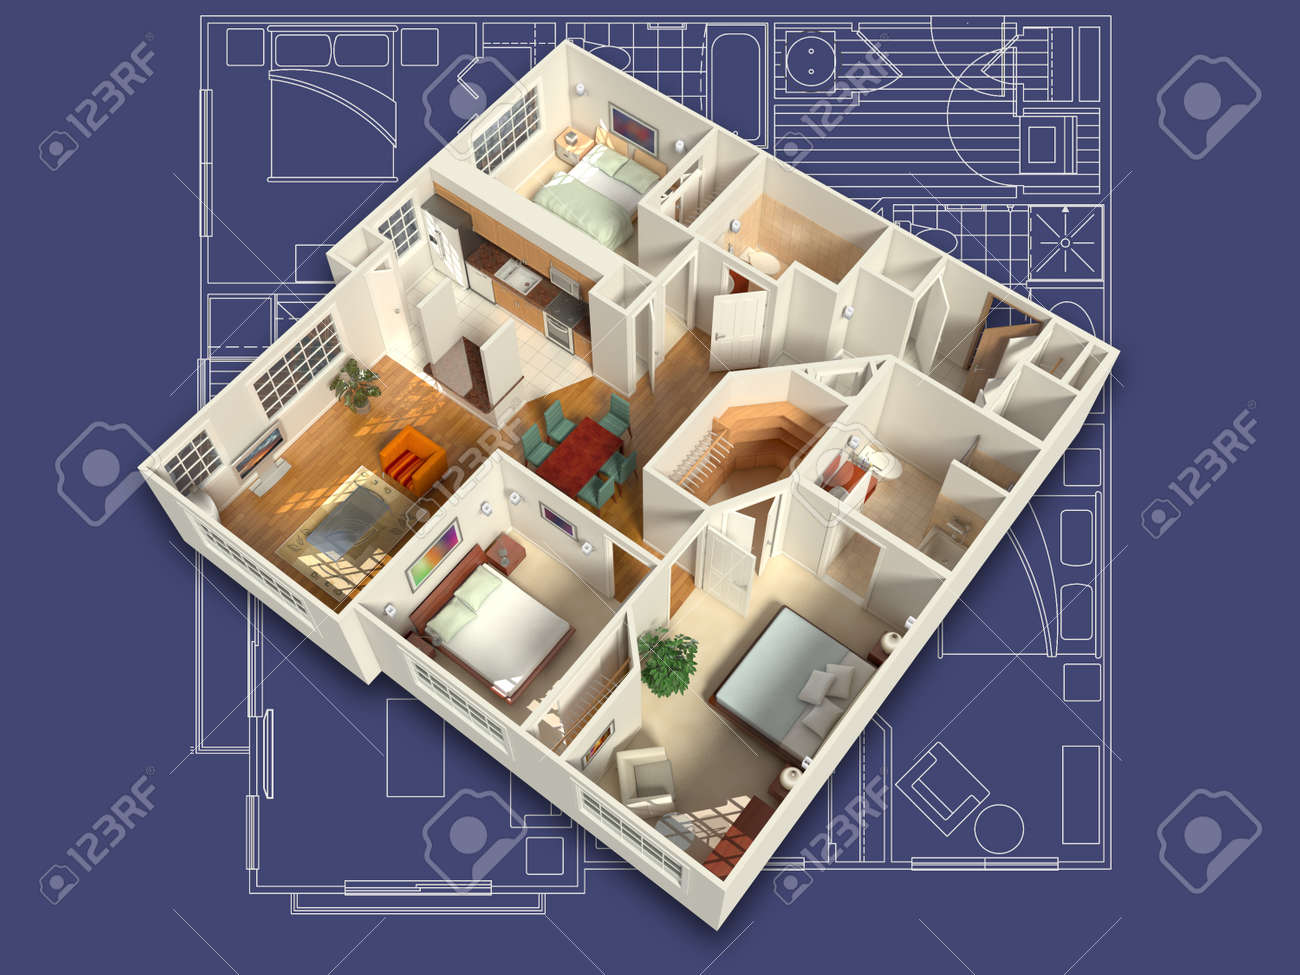 3D House Interior On A Blueprint Stock Photo, Picture And Royalty ...